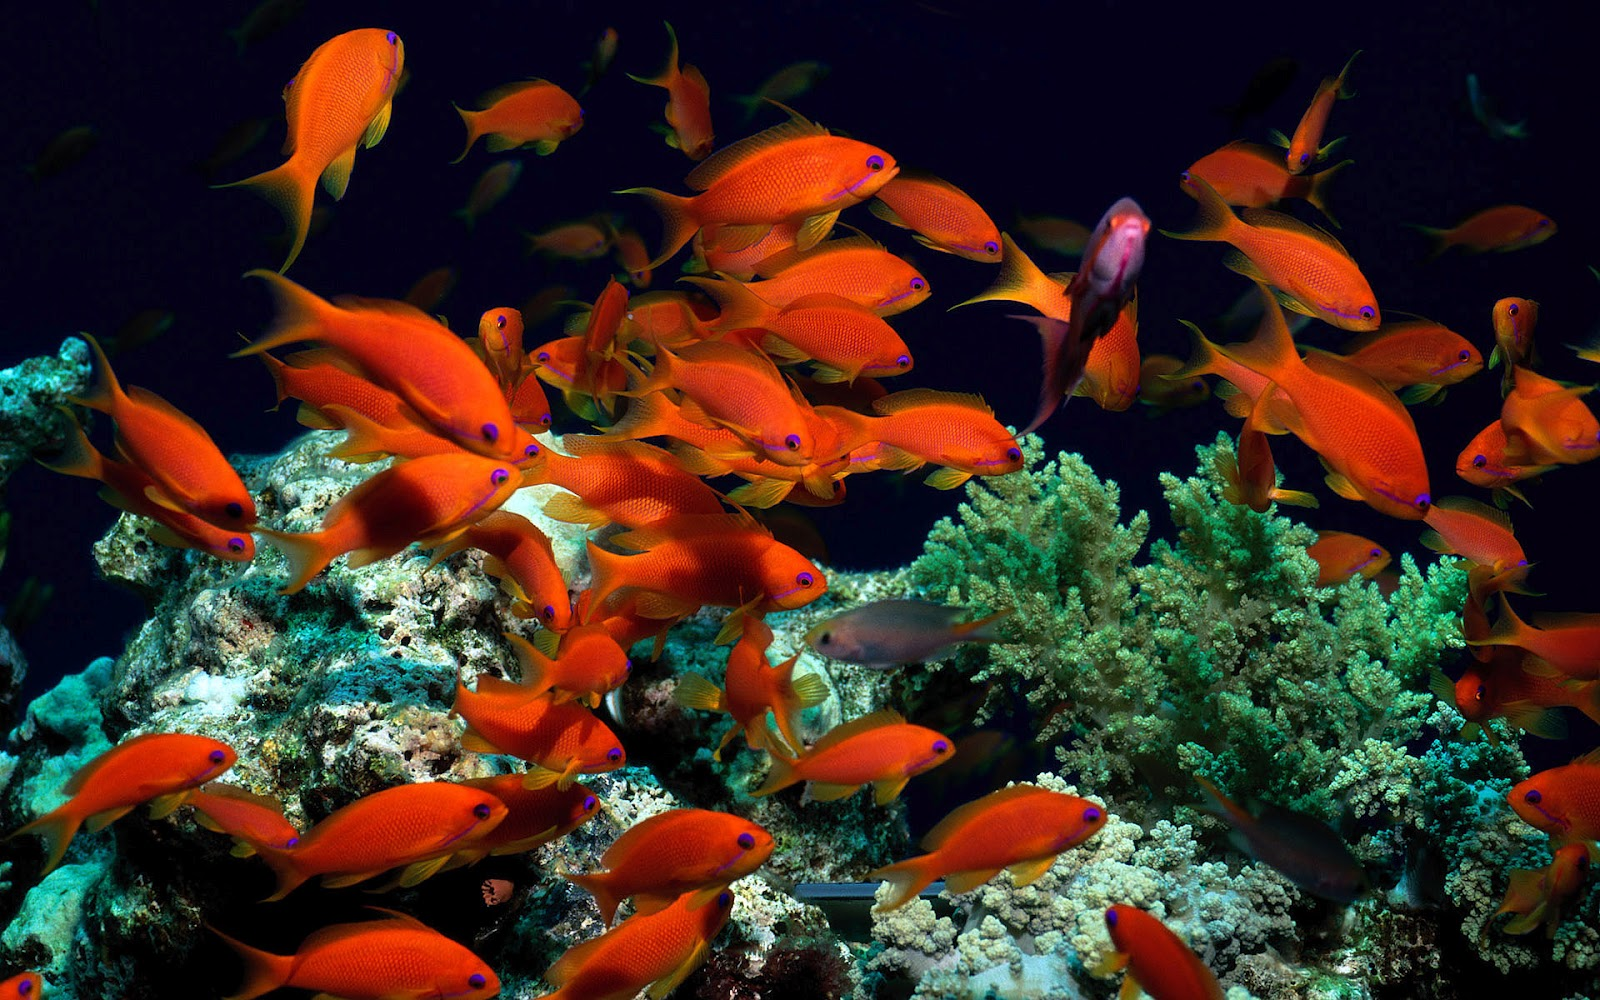 Fish Pictures Ocean Wallpapers Chapter 1 - HD Animal Wallpapers